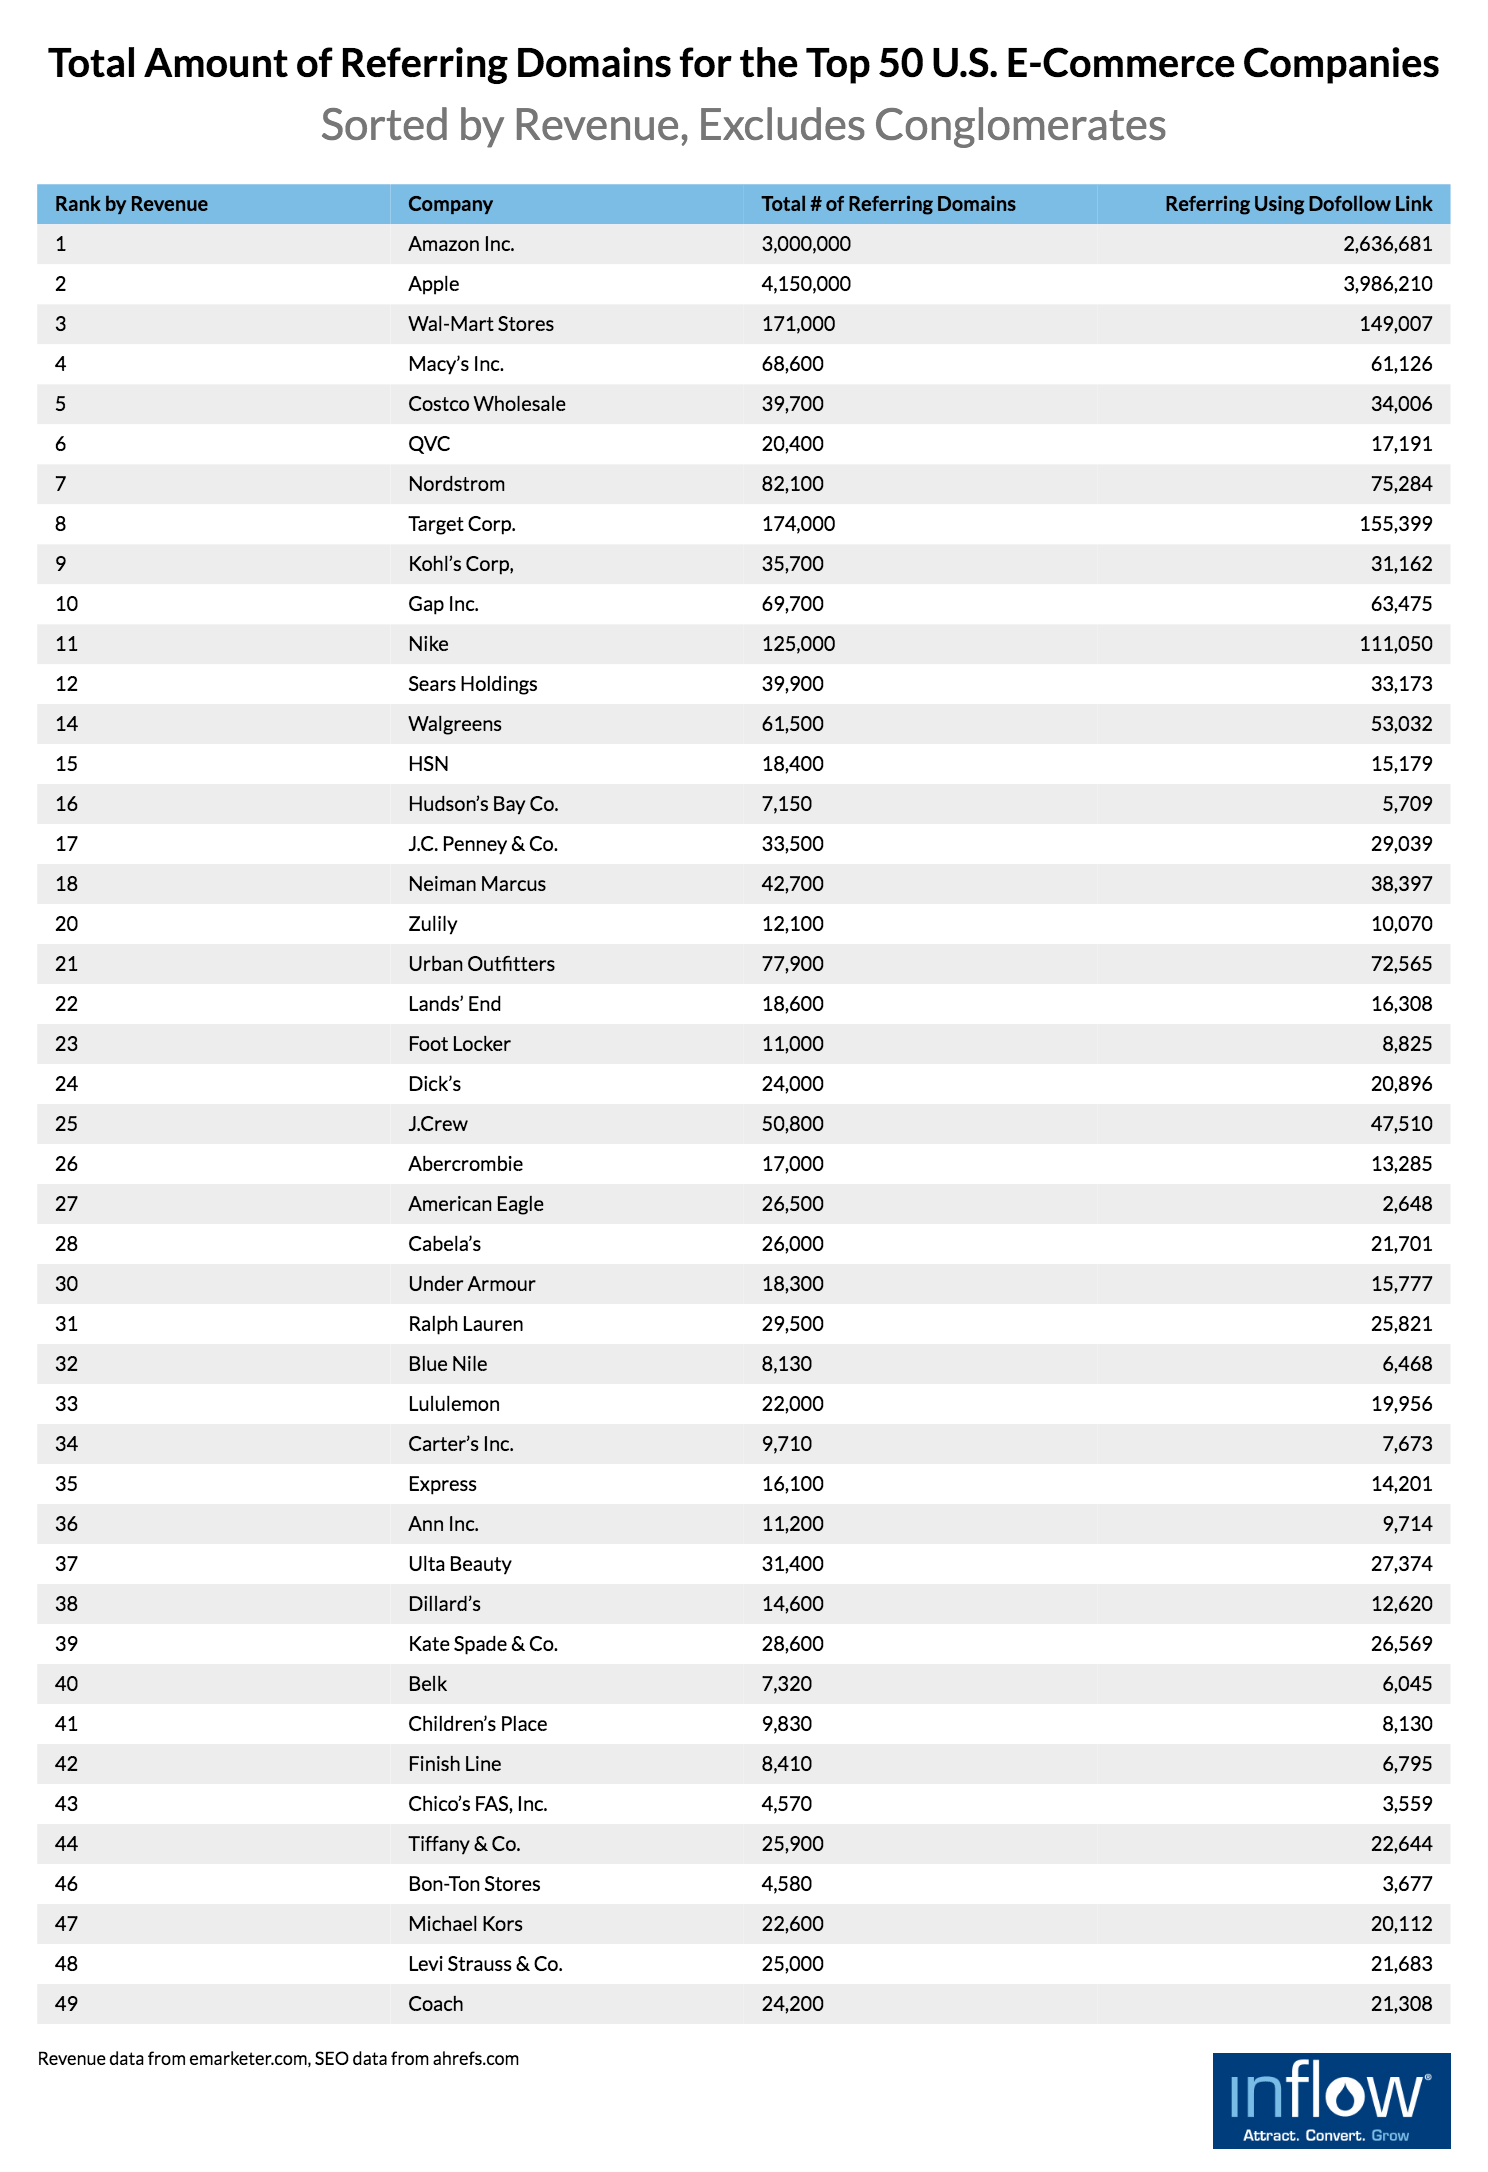 Total Amount of Referring Domains for the Top 50 U.S. eCommerce Companies